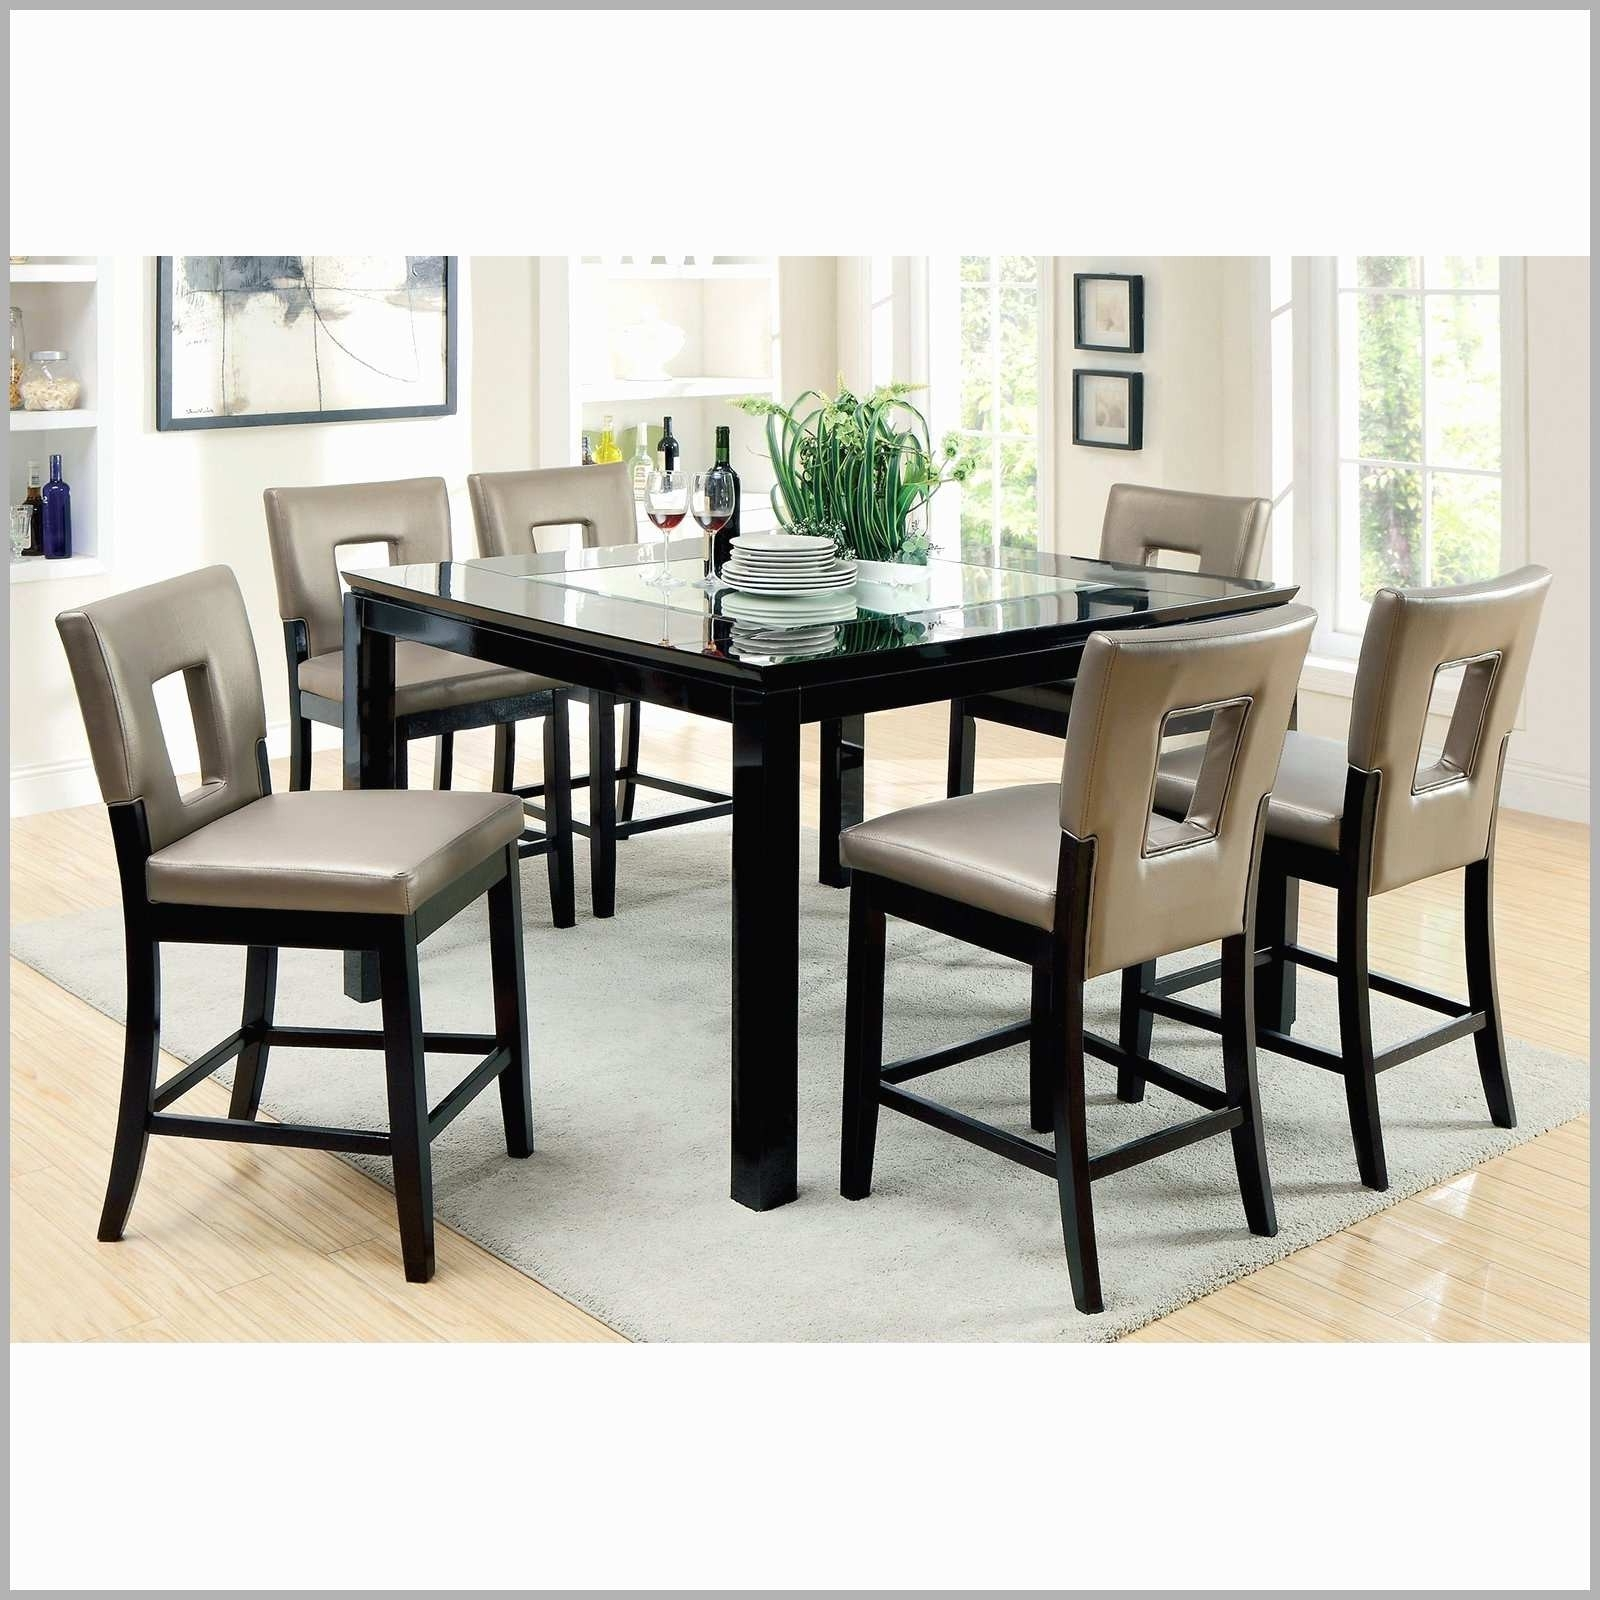 Most Popular White High Gloss Extending Dining Table Luxury 8 Seater Dining Table Inside White Dining Tables 8 Seater (Gallery 12 of 25)